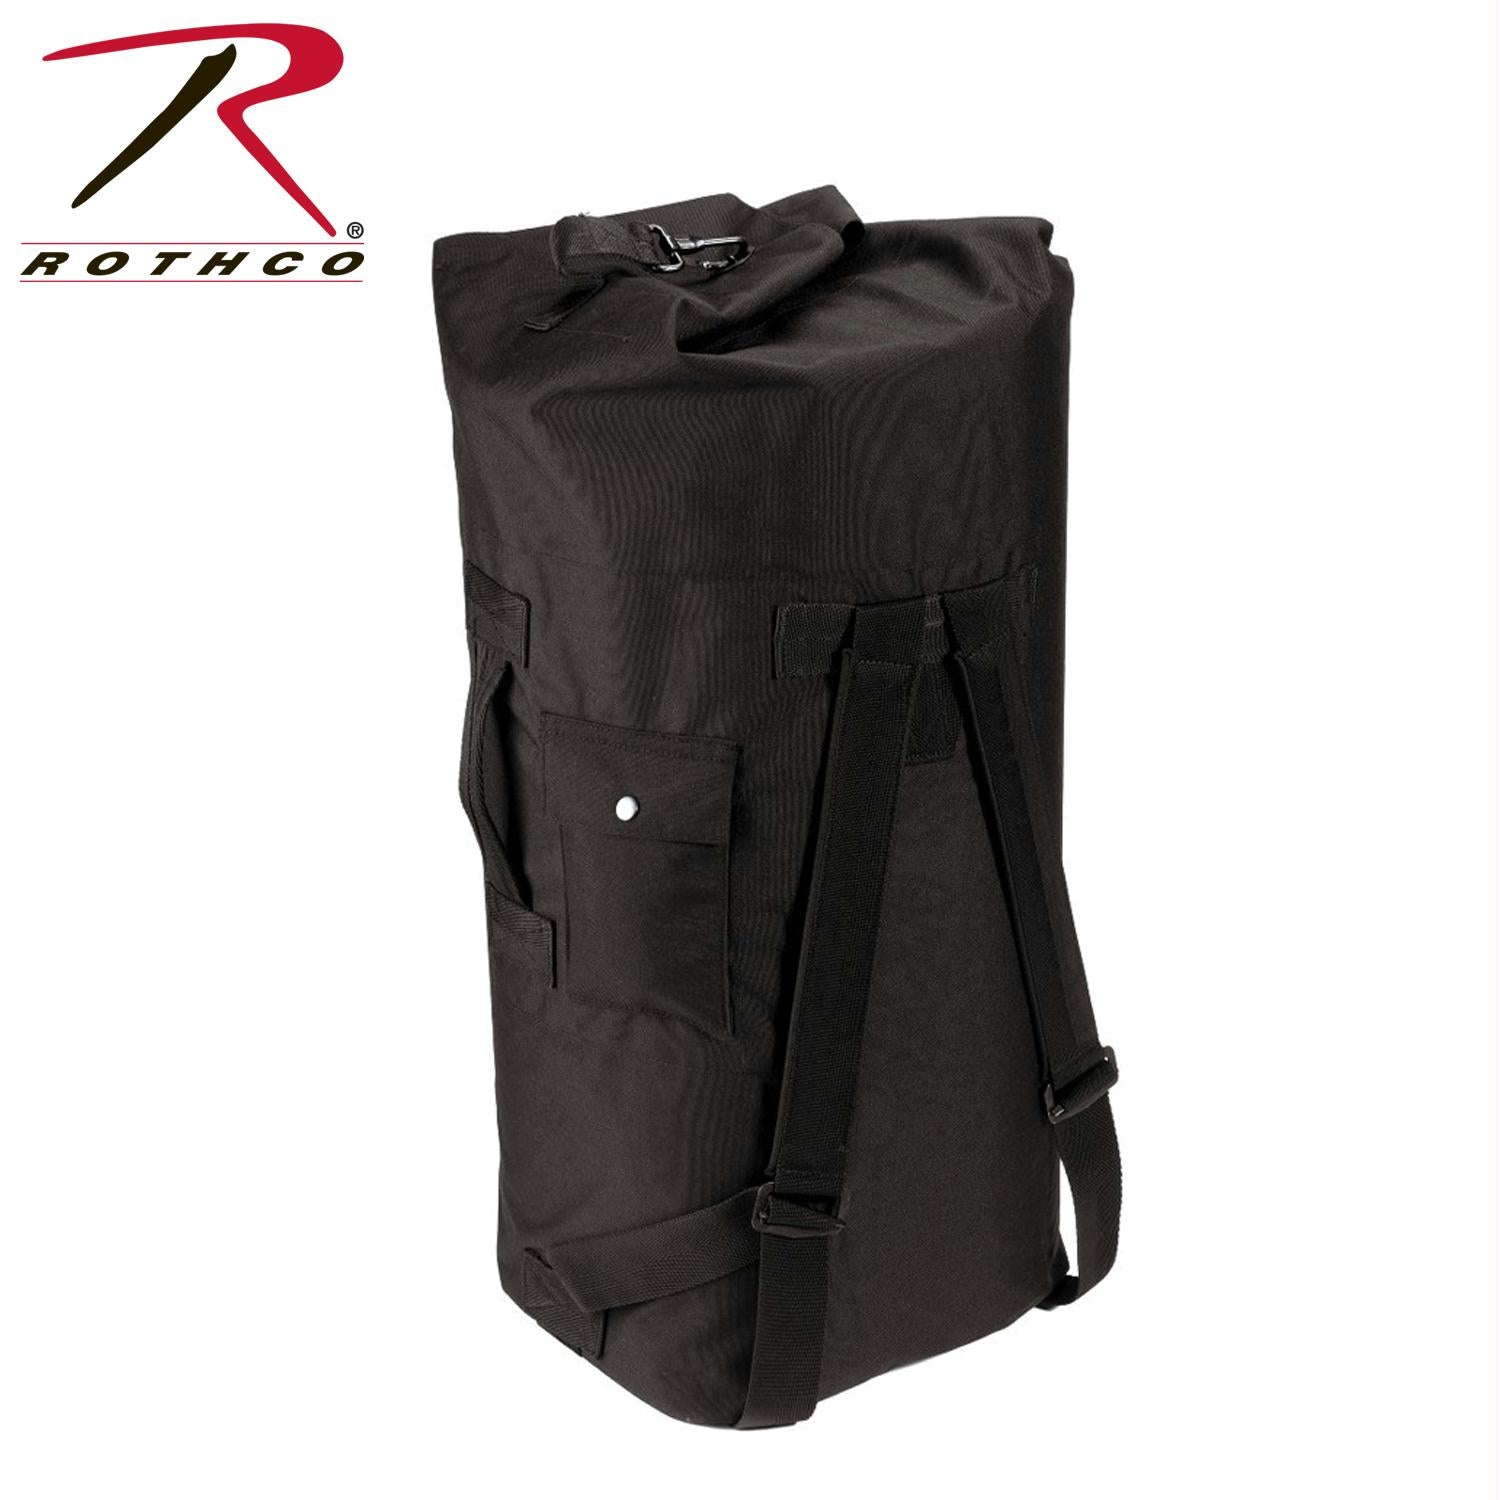 Rothco G.I. Type Enhanced Double Strap Duffle Bag - Black